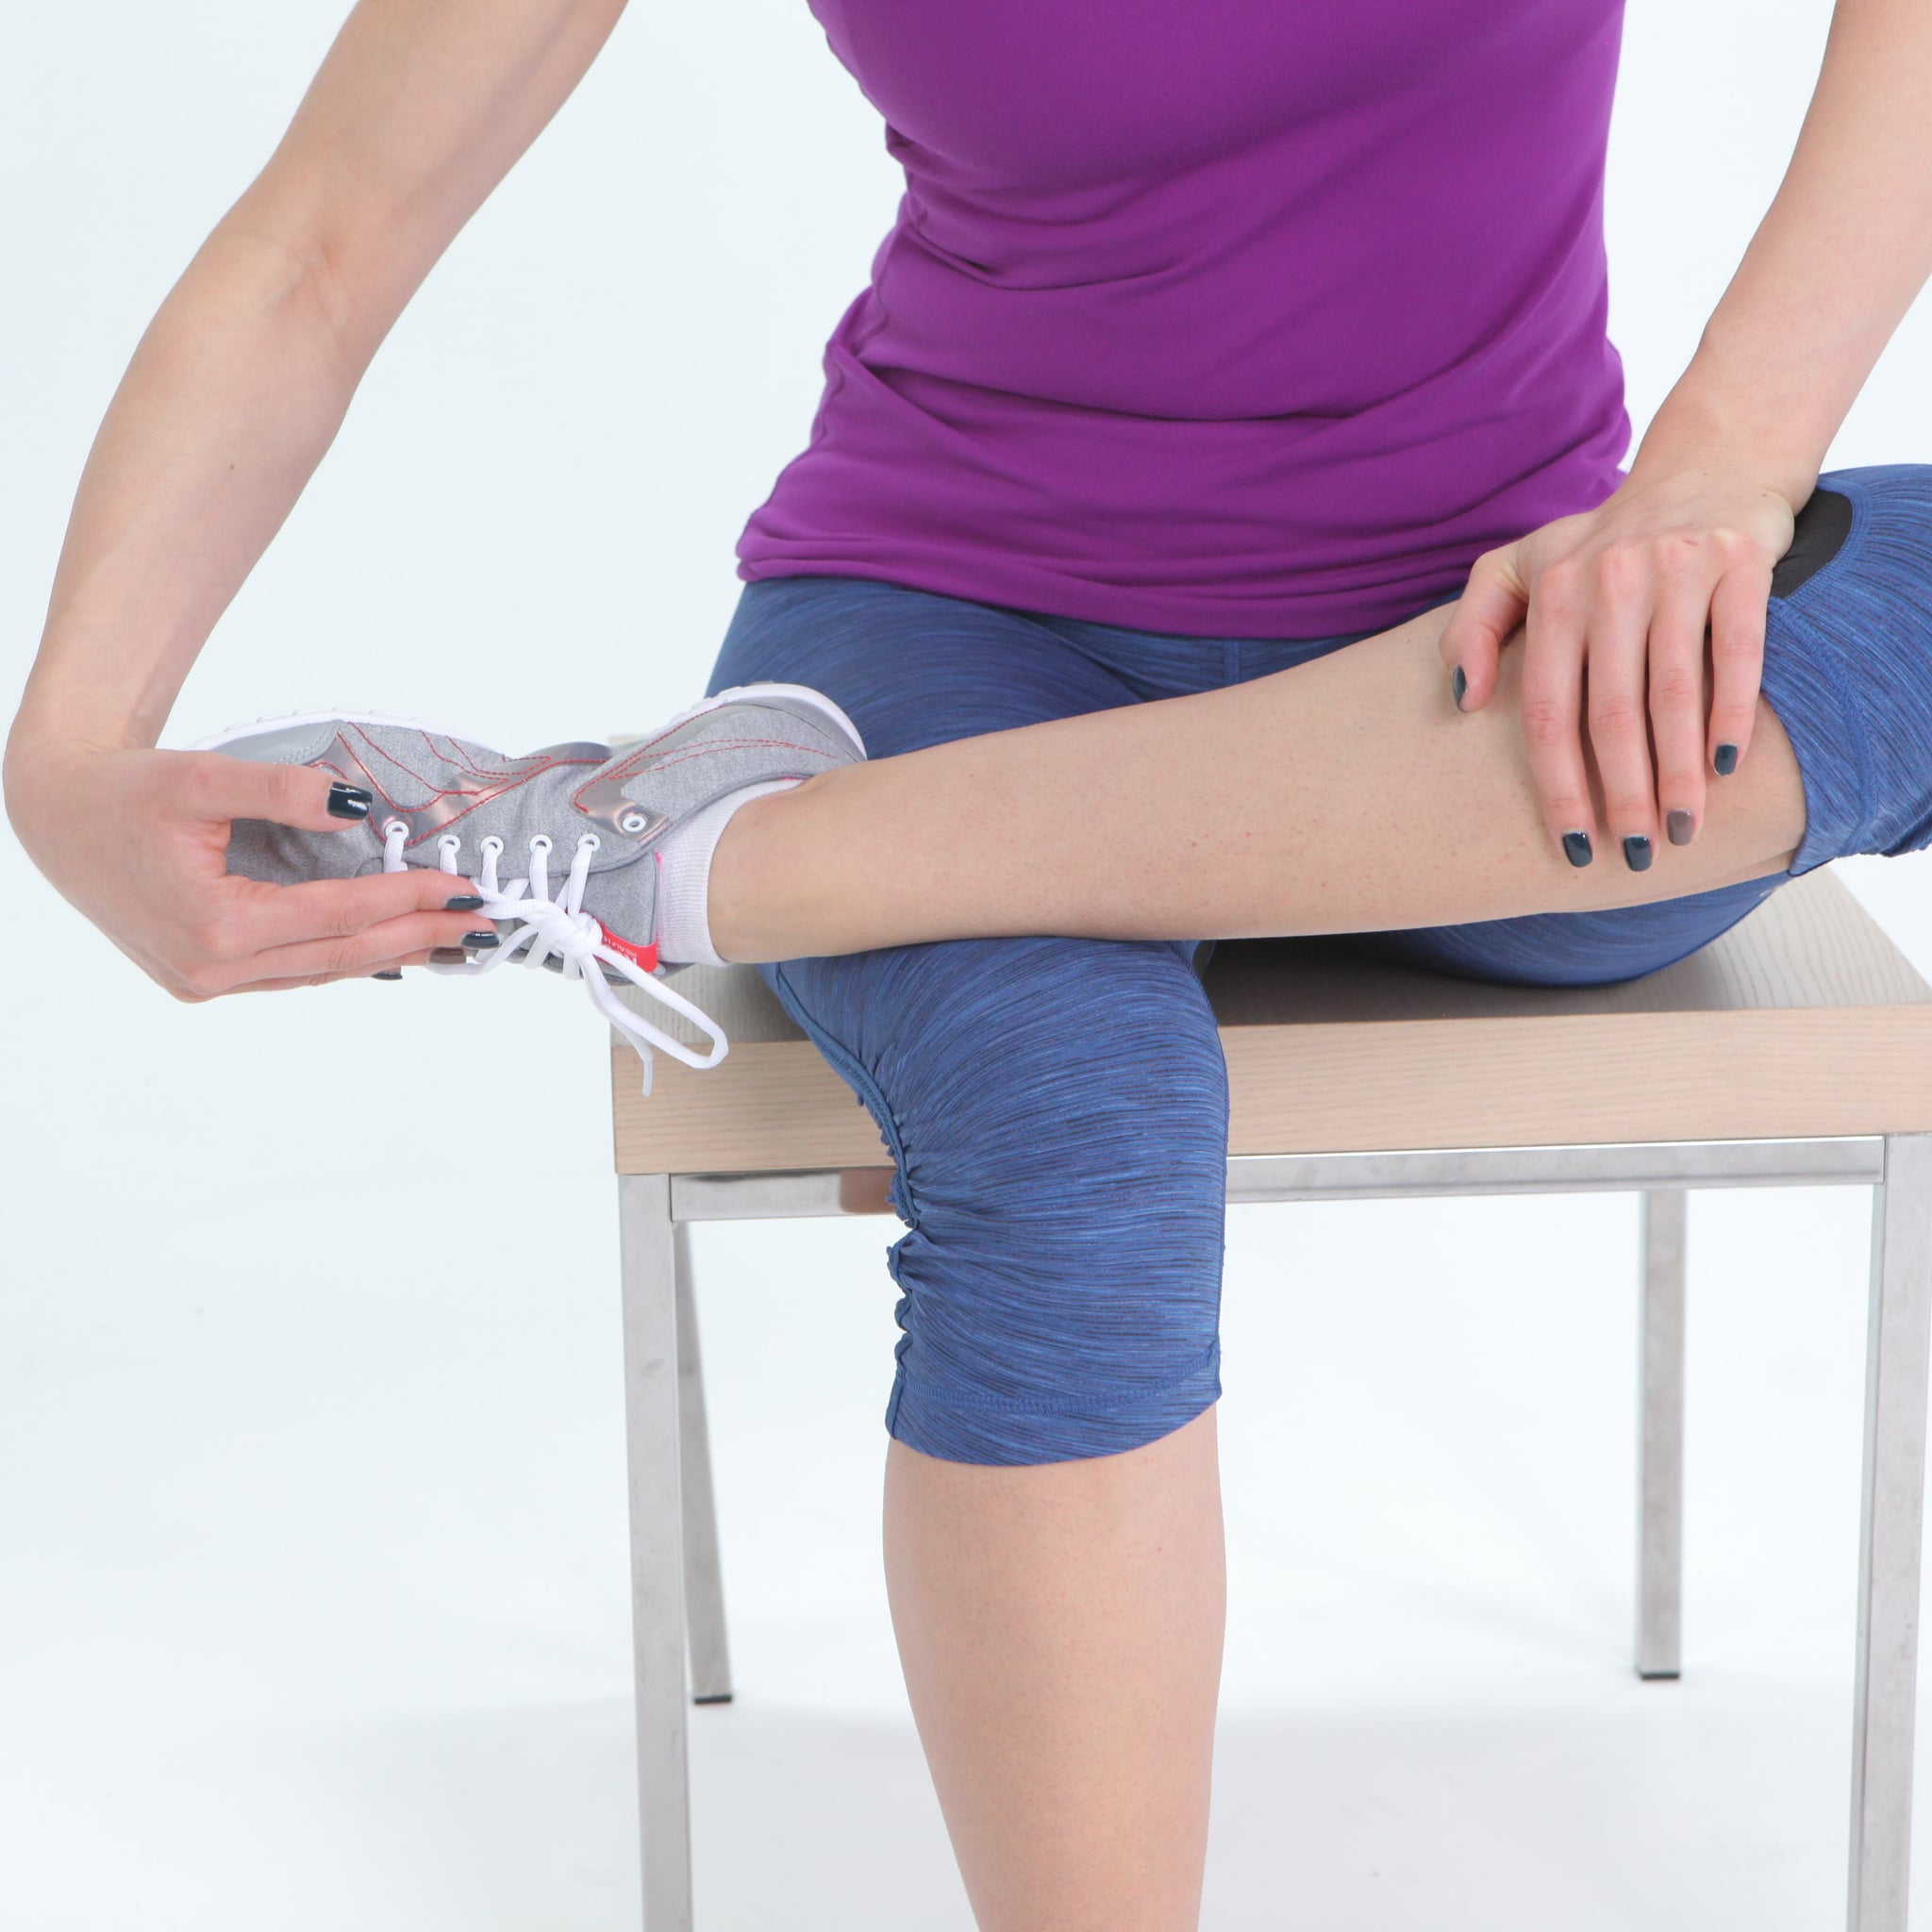 How can a walking cast or boot help with plantar fasciitis?